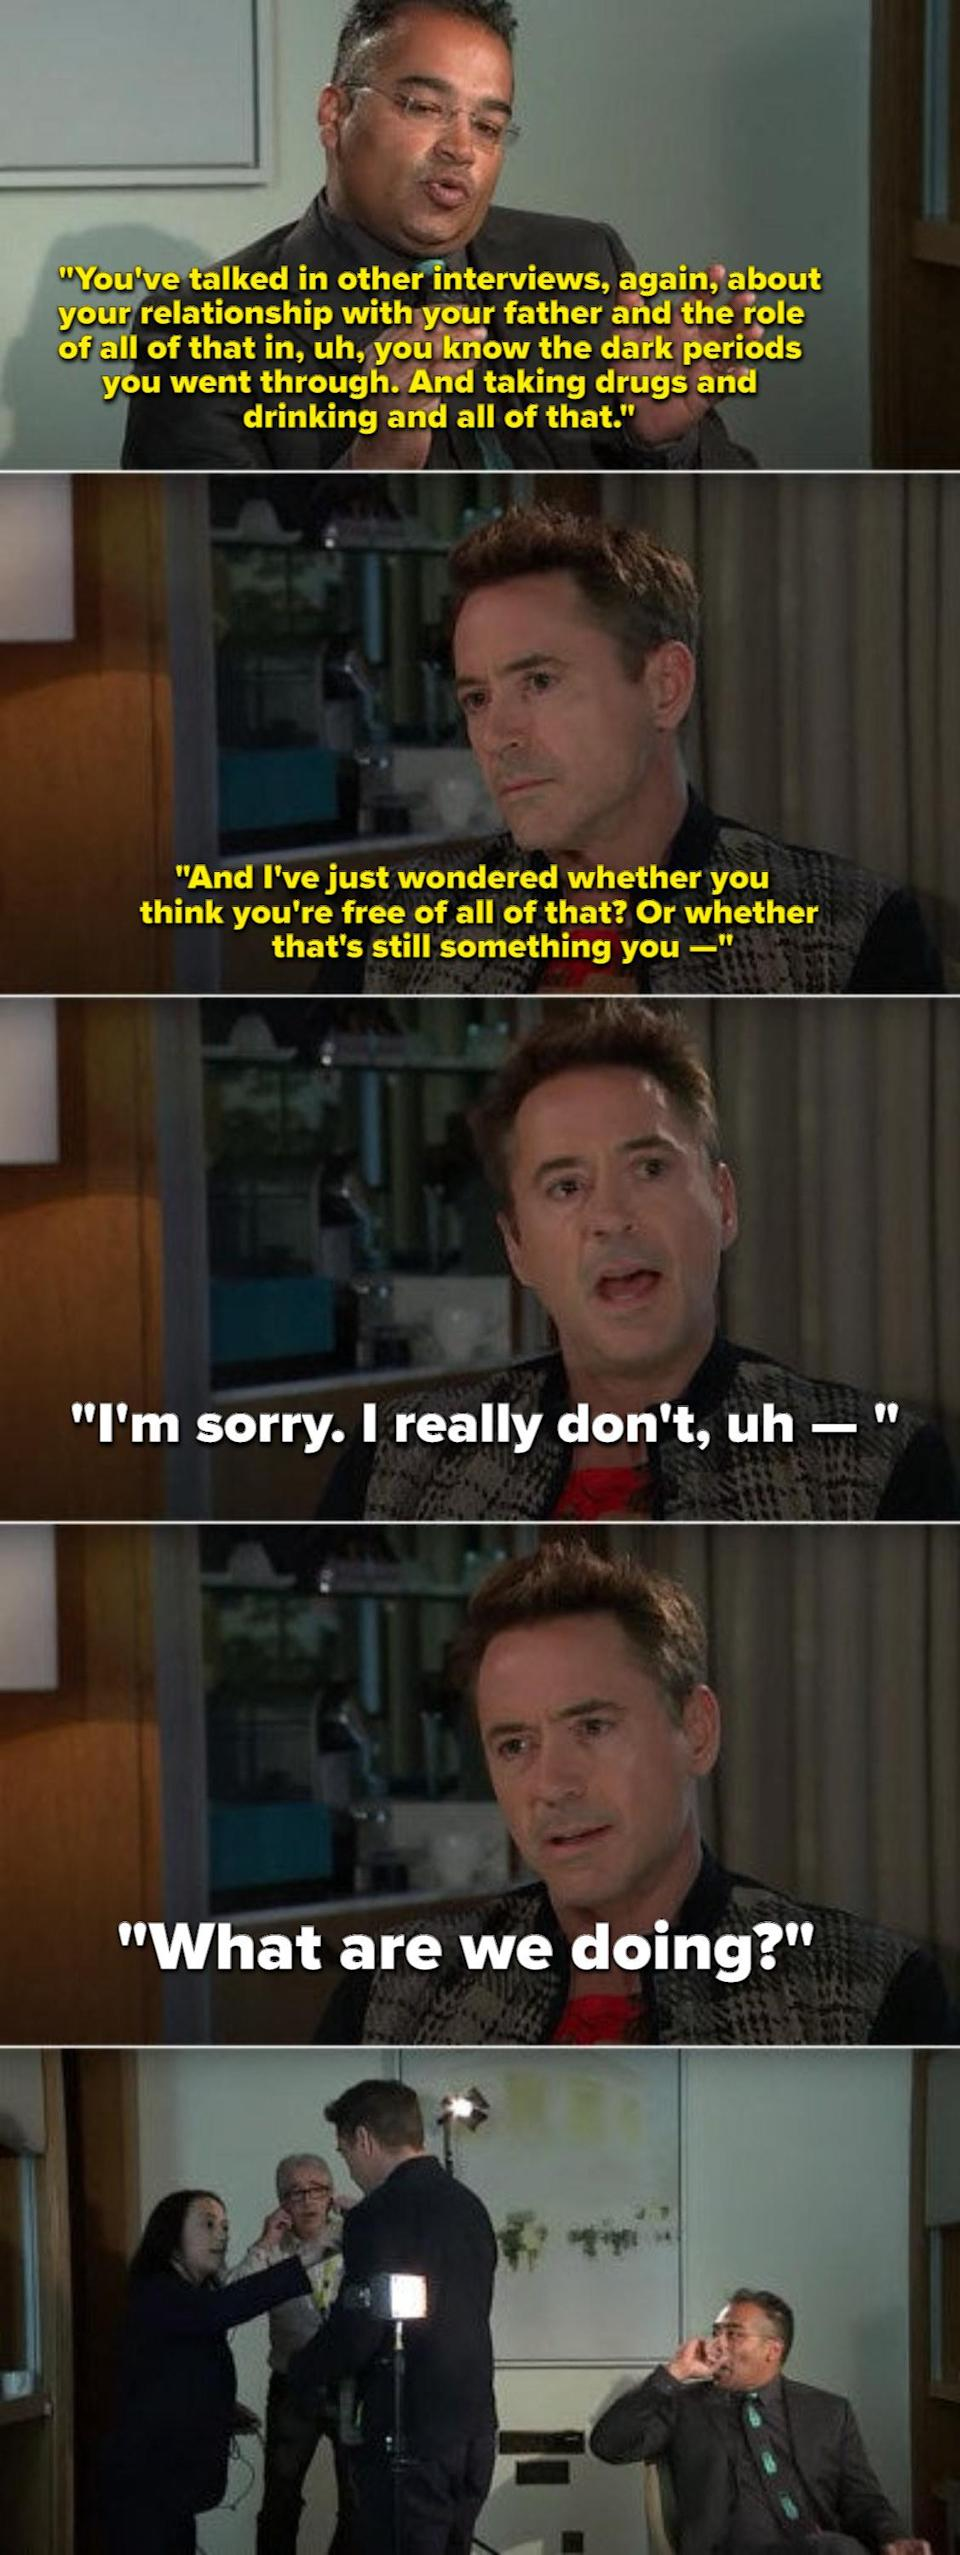 Robert Downey Jr. leaving an interview after being asked about his addiction and relationship with his father